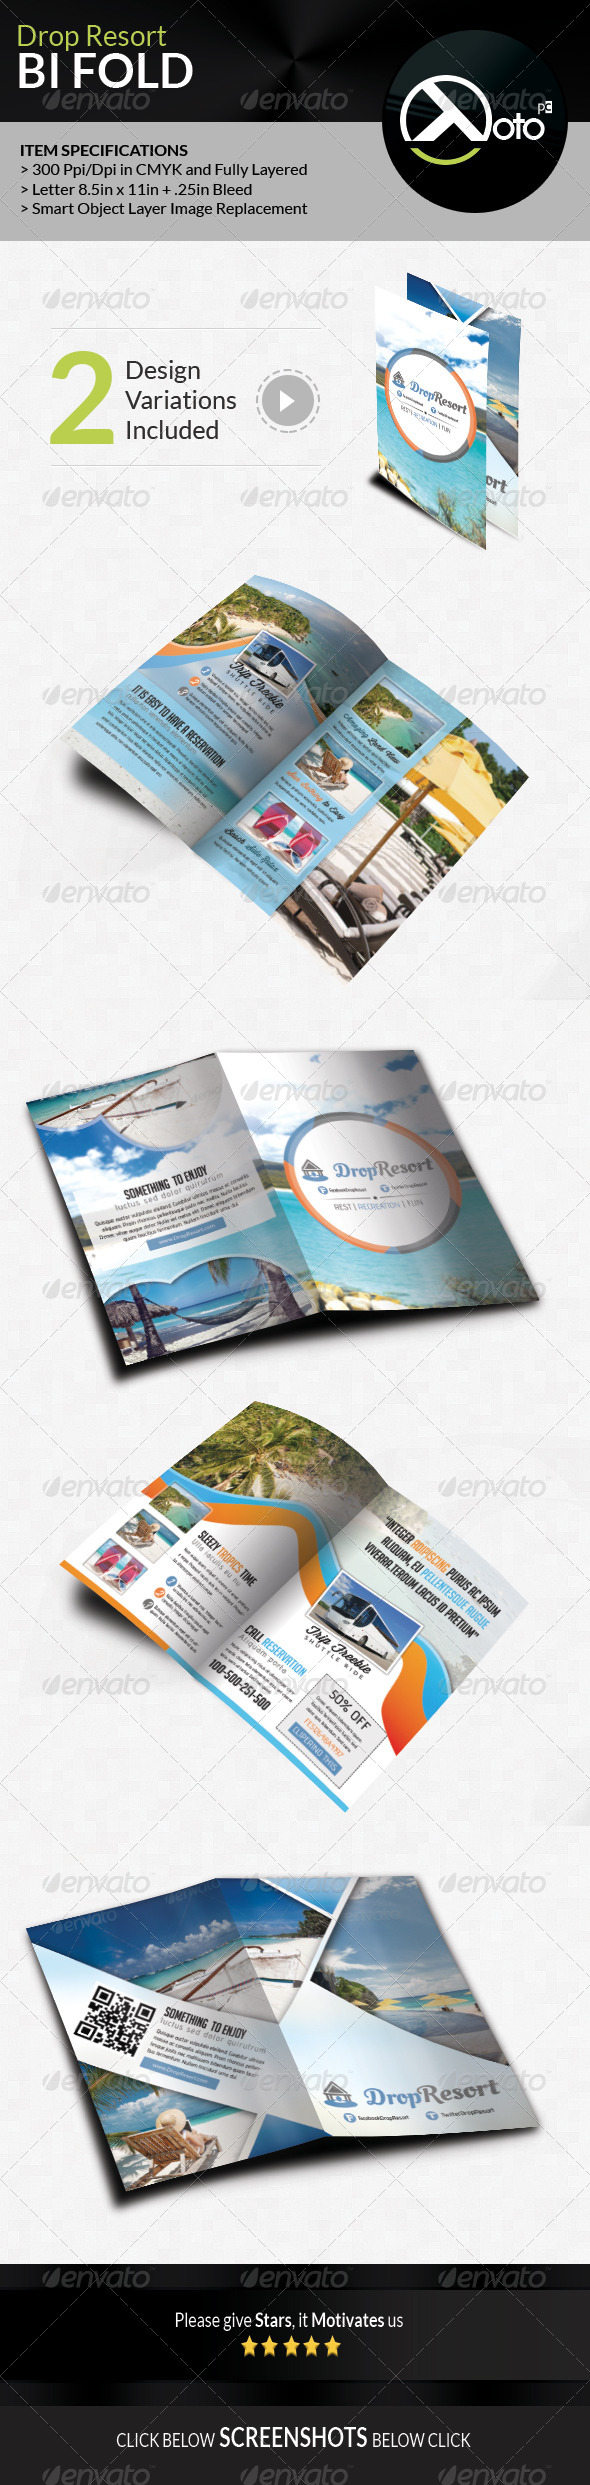 GraphicRiver Drop Beach Resort Vacation Trip Bifold 7799000